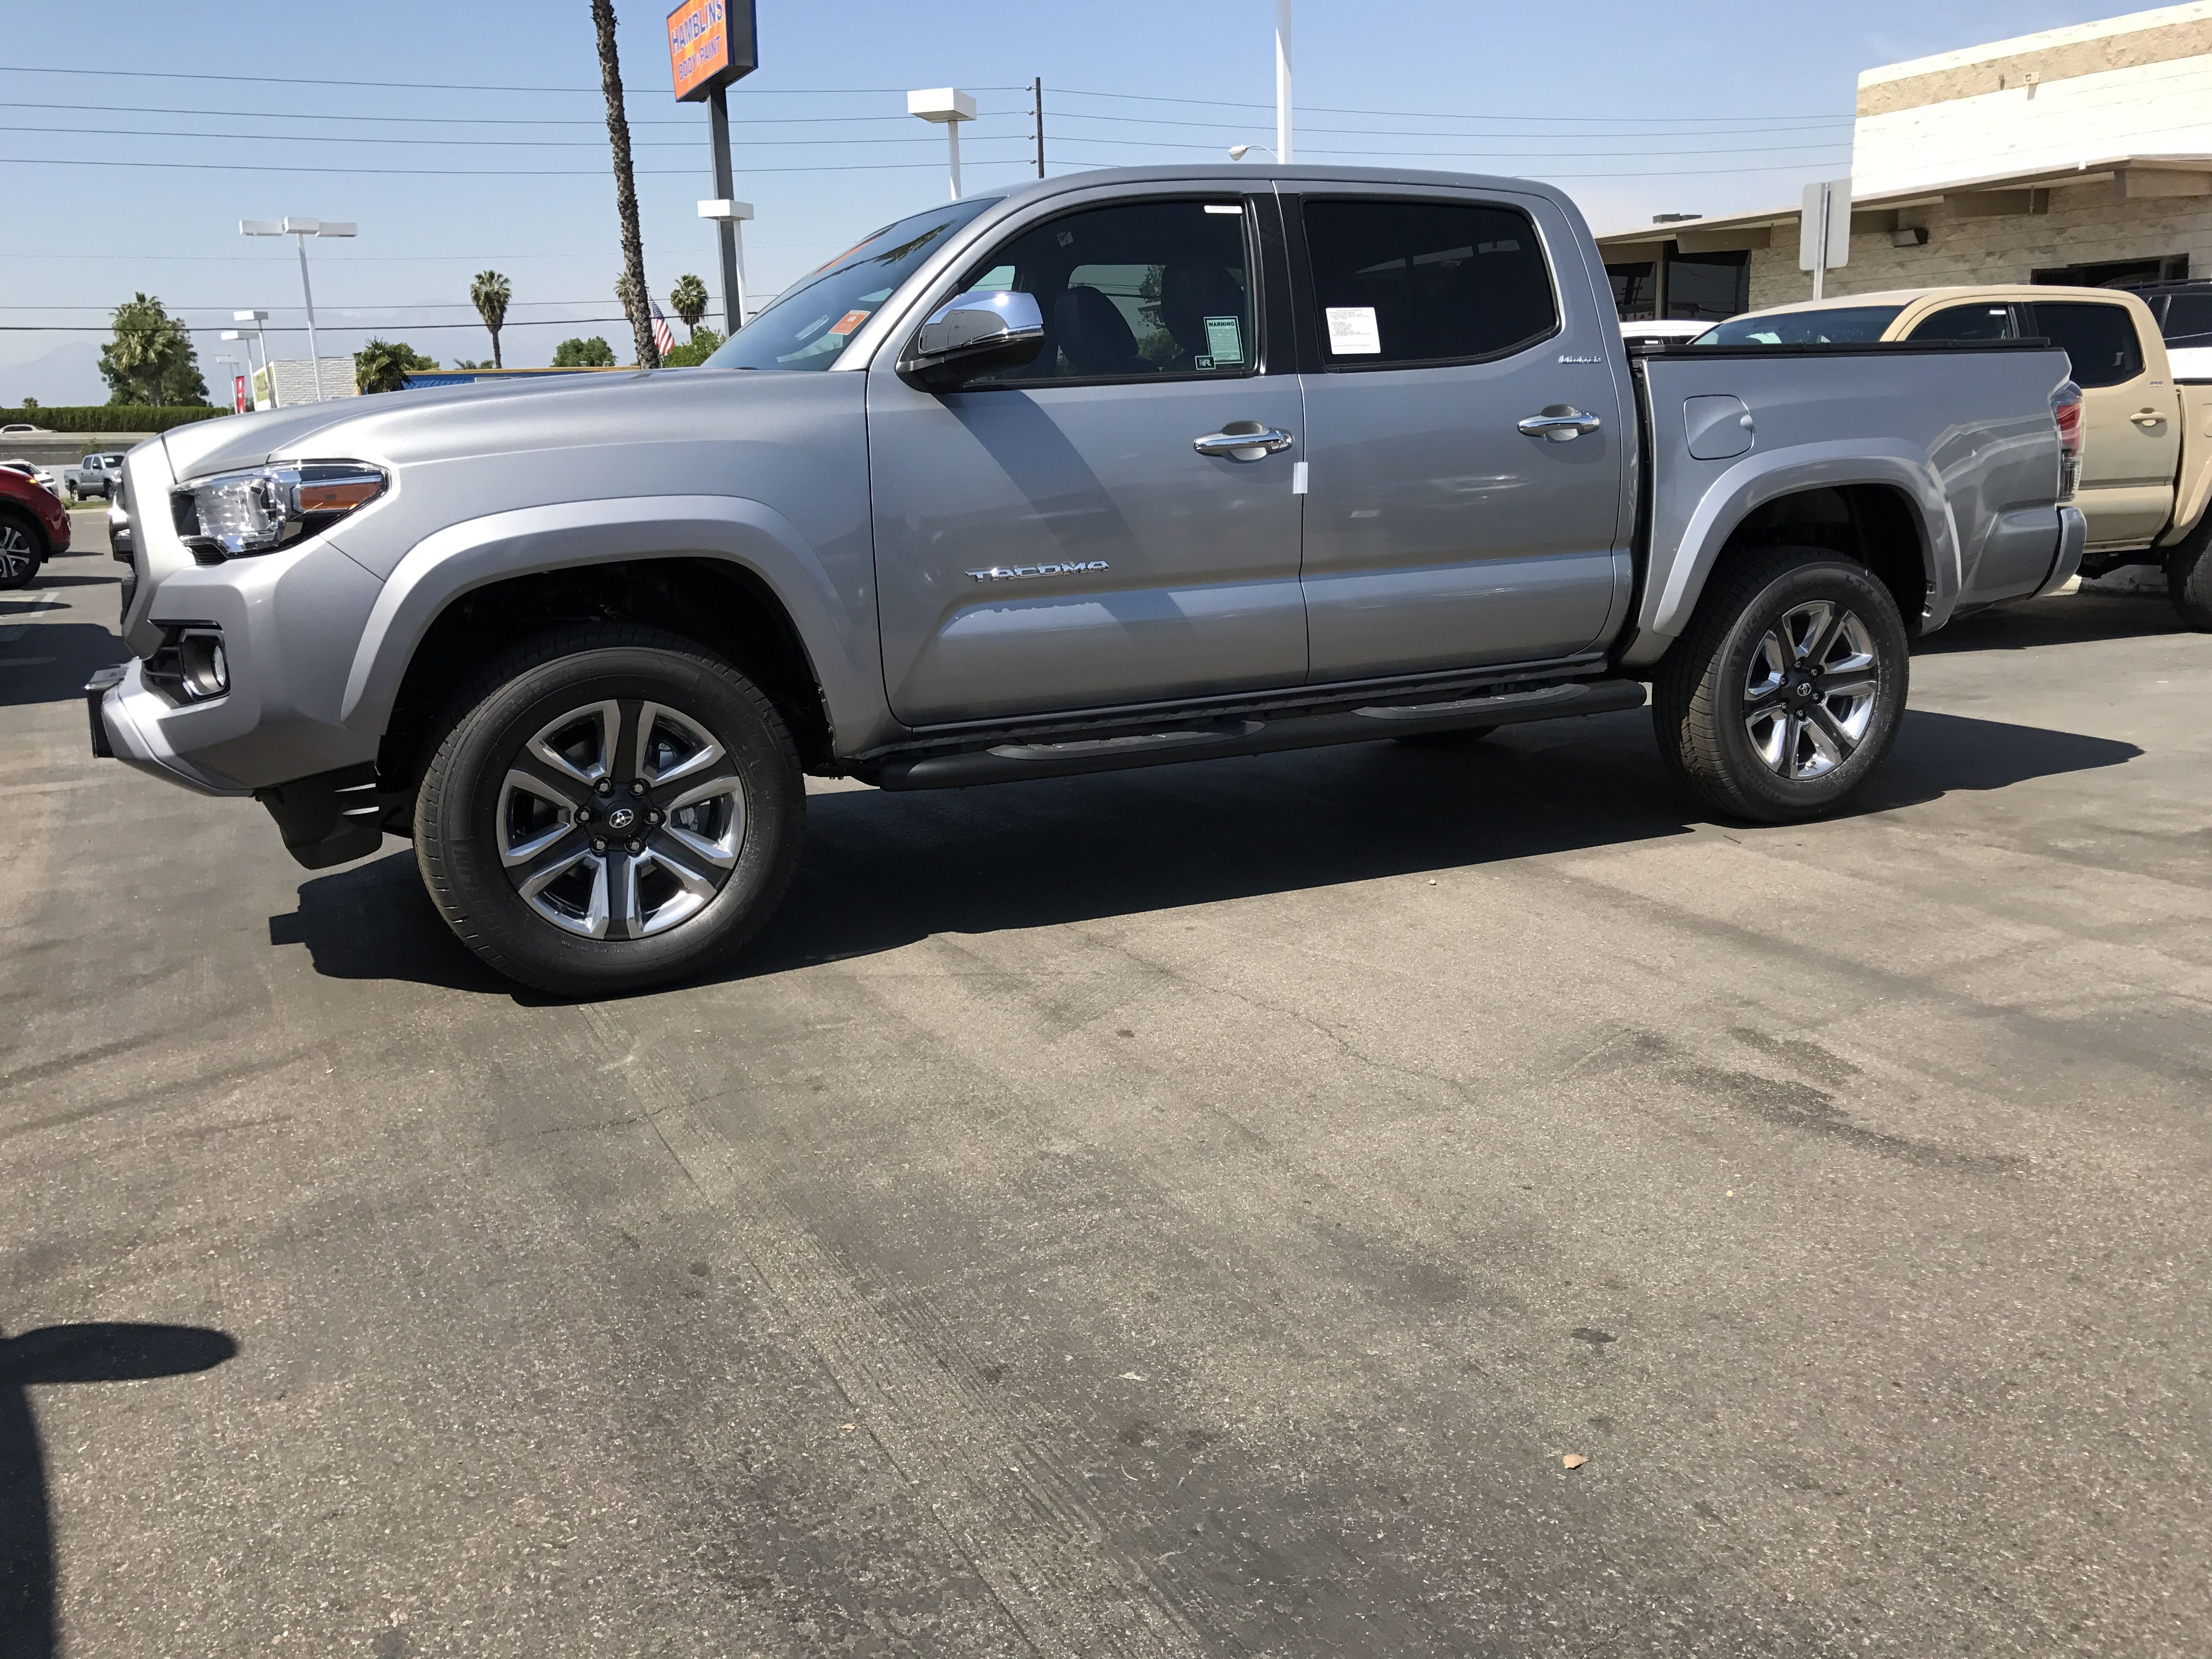 2017 toyota tacoma double cab 3 5l v6 limited in silver. Black Bedroom Furniture Sets. Home Design Ideas